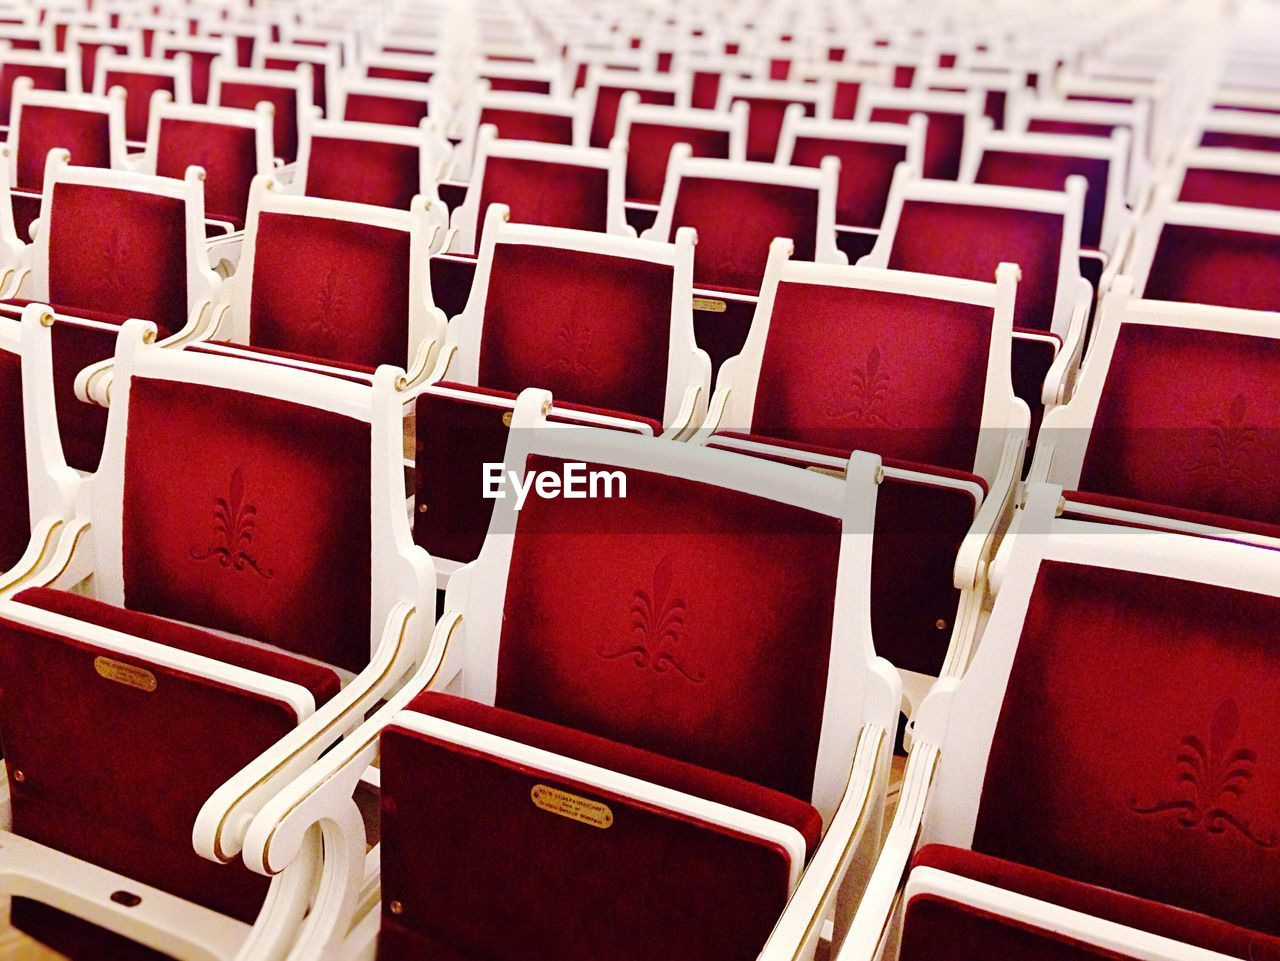 Full frame shot of red seats in concert hall